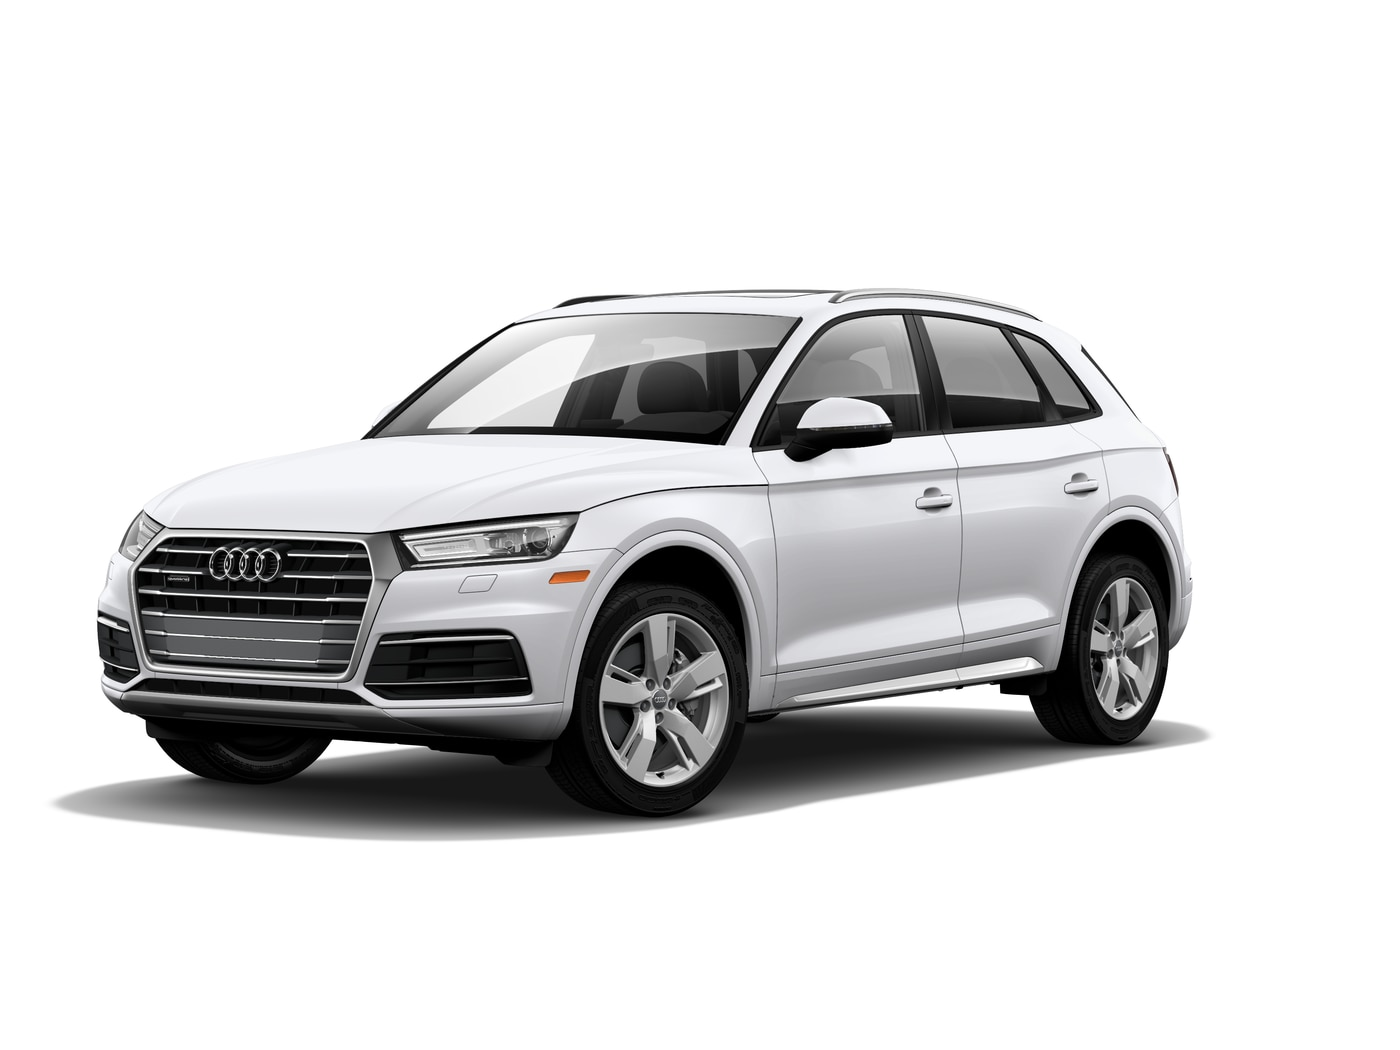 New 2018 Audi Q5 2.0T SUV in Iowa City, IA